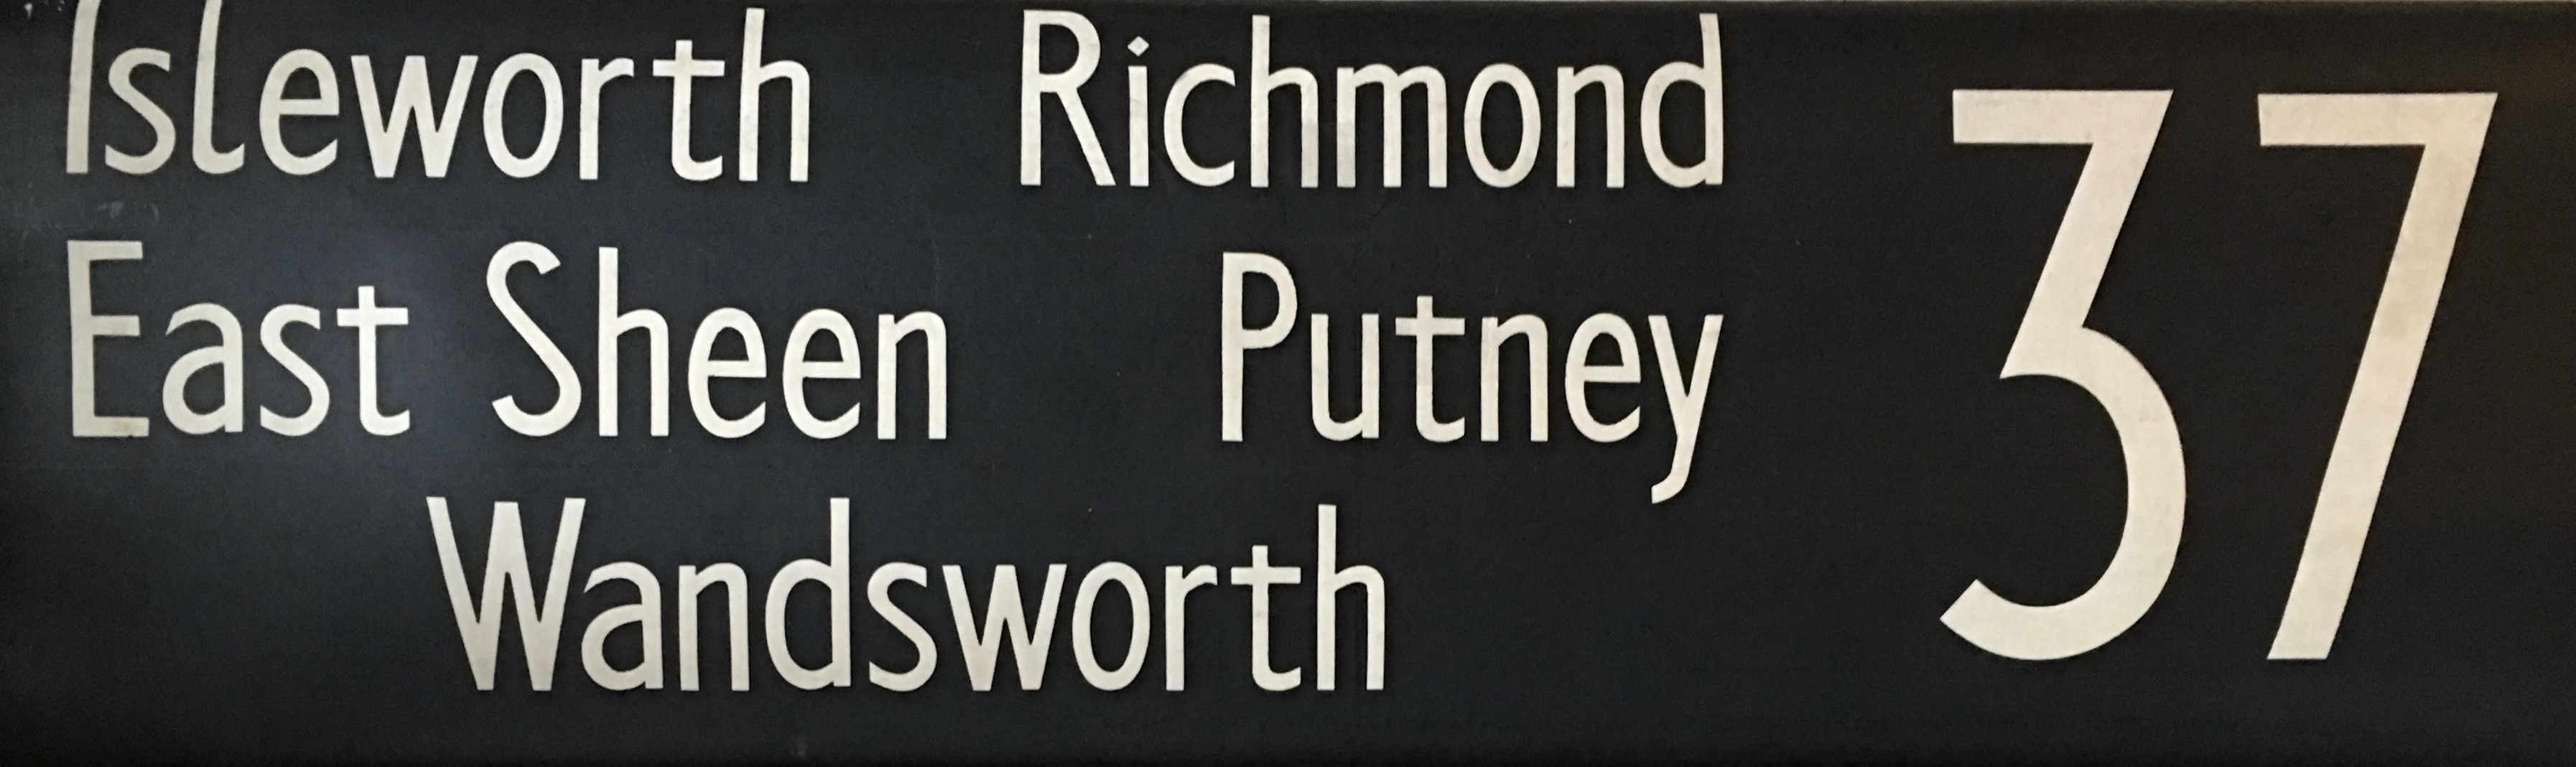 37 Ssleworth, Richmond, East Sheen, Putney, Wandsworth